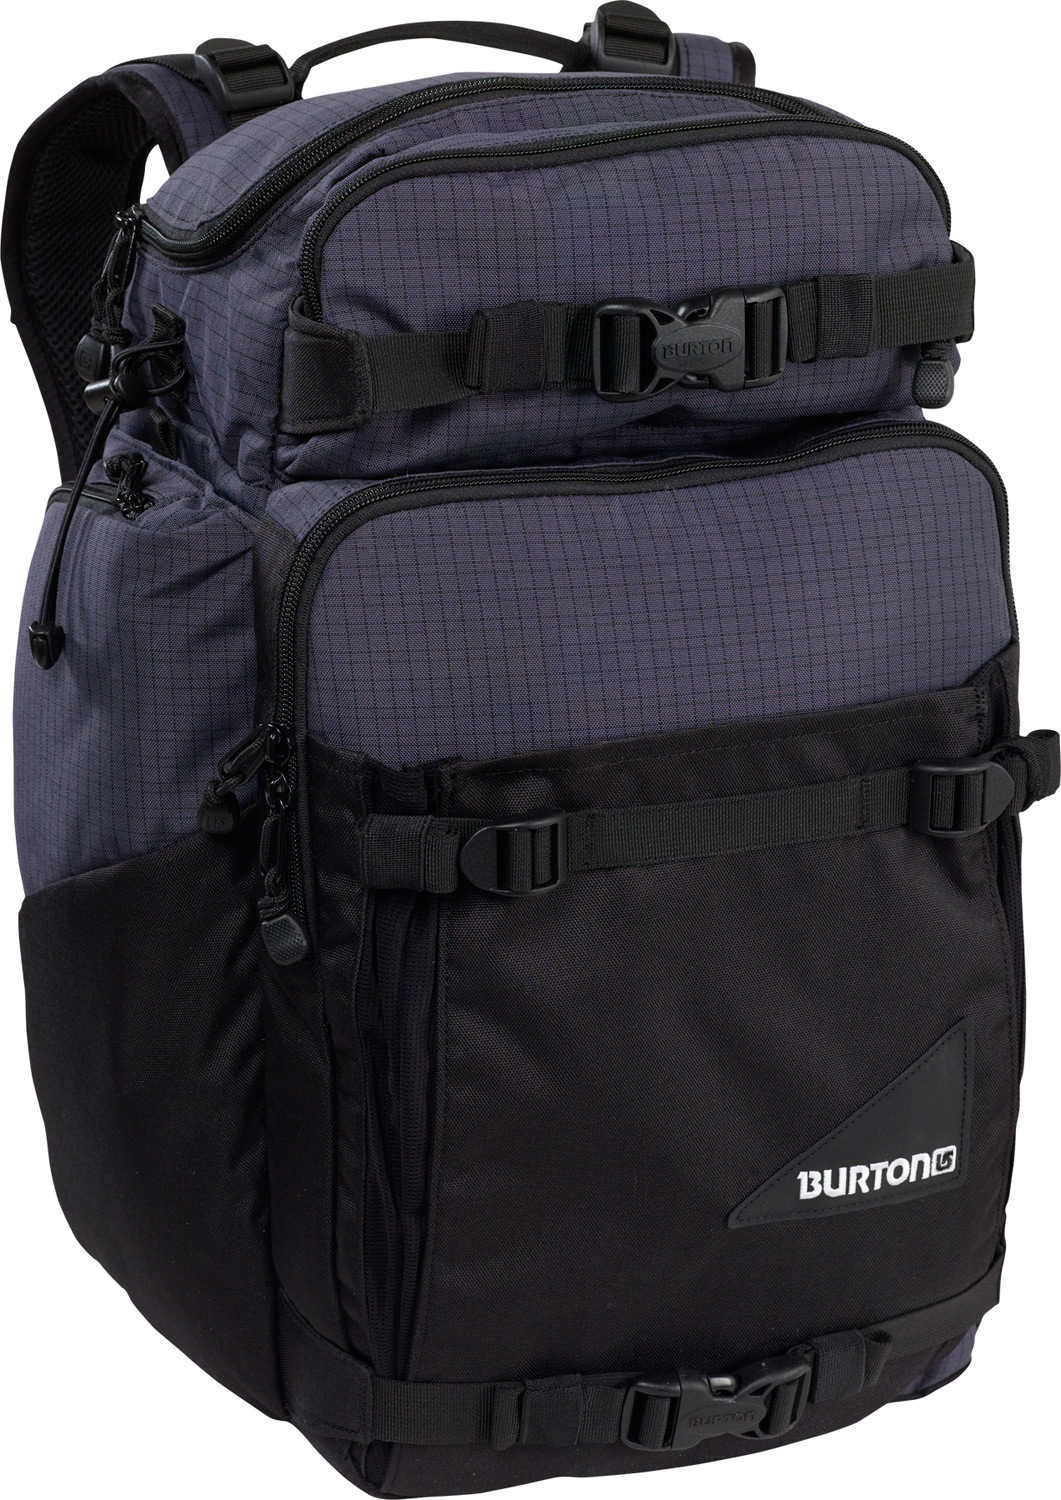 Snowboard Board, batteries, film, lenses, lights, camera, action! Even has laptop storage for on-site editing.Key Features of the Burton Resolution Backpack: Fabrication: 420D High-Density Nylon / 600D Asym Two-Tone Polyester Ripstop / 500D Cordura Cush Ergonomic Shoulder Harness and Ergonomic Back Panel Vertical Board / Tripod Carry with Hideaway Upper Straps Load-Balance Waist Harness with Storage Pockets Padded Customizable Internal Compartment Dual Side Panel Light Stem Storage External Shovel Blade Shove-It Pocket Padded Laptop Compartment [14 in. x 12.5 in. x 2 in.] [36cm x 32cm x 5cm] Removable Storage Pocket for Film, Cords, or Batteries Fleece-Lined Sound Pocket Oversized Beverage Stash Dimensions: [20 in. x 14 in. x 8 in.] [51cm x 36cm x 20cm] 27L - $80.95